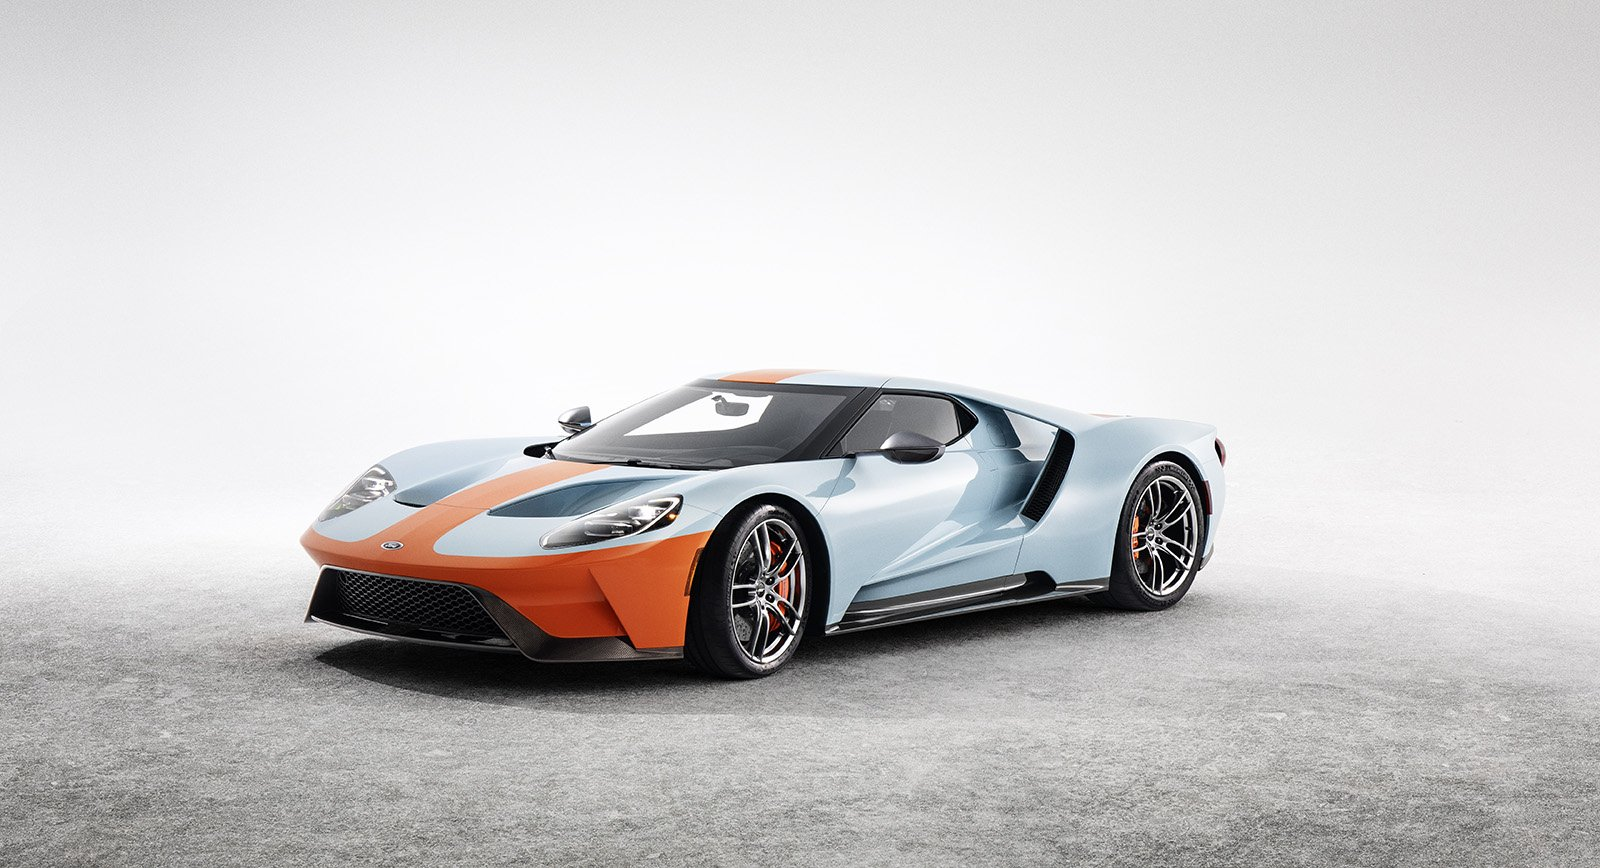 Ford Celebrates Le Mans Victory with Gulf Liveried Heritage Edition